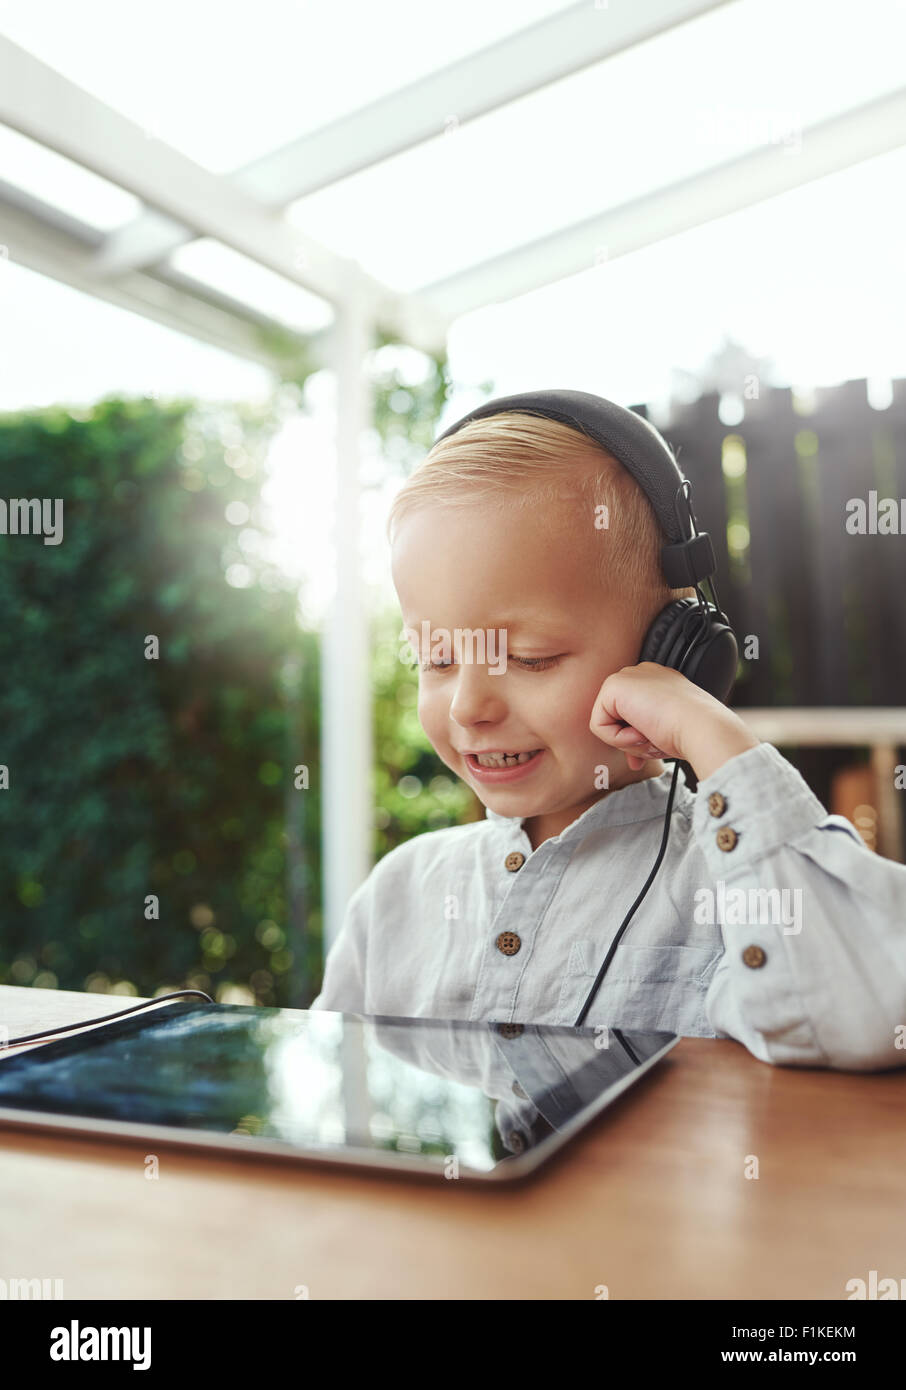 Little boy smiling in delight as he listens to music downloaded on his tablet-pc using stereo headphones while sitting - Stock Image